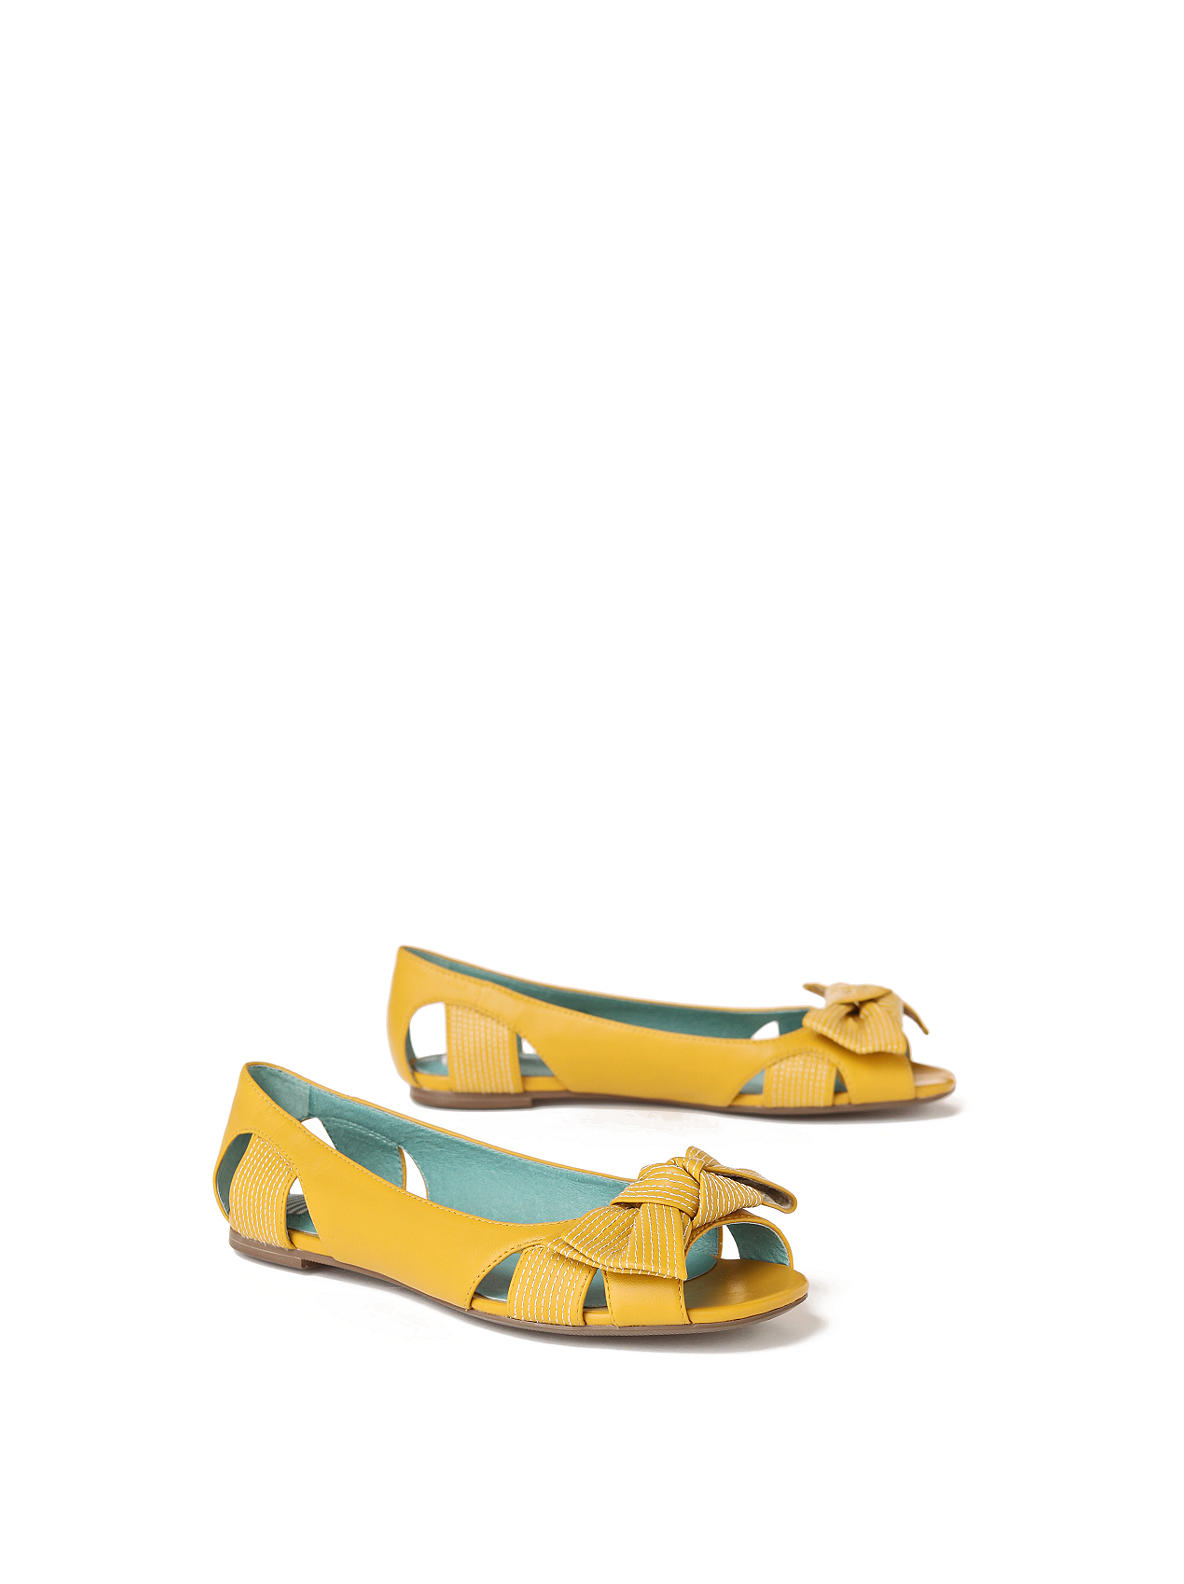 For You Flats - Anthropologie.com :  bow yellow retro flats